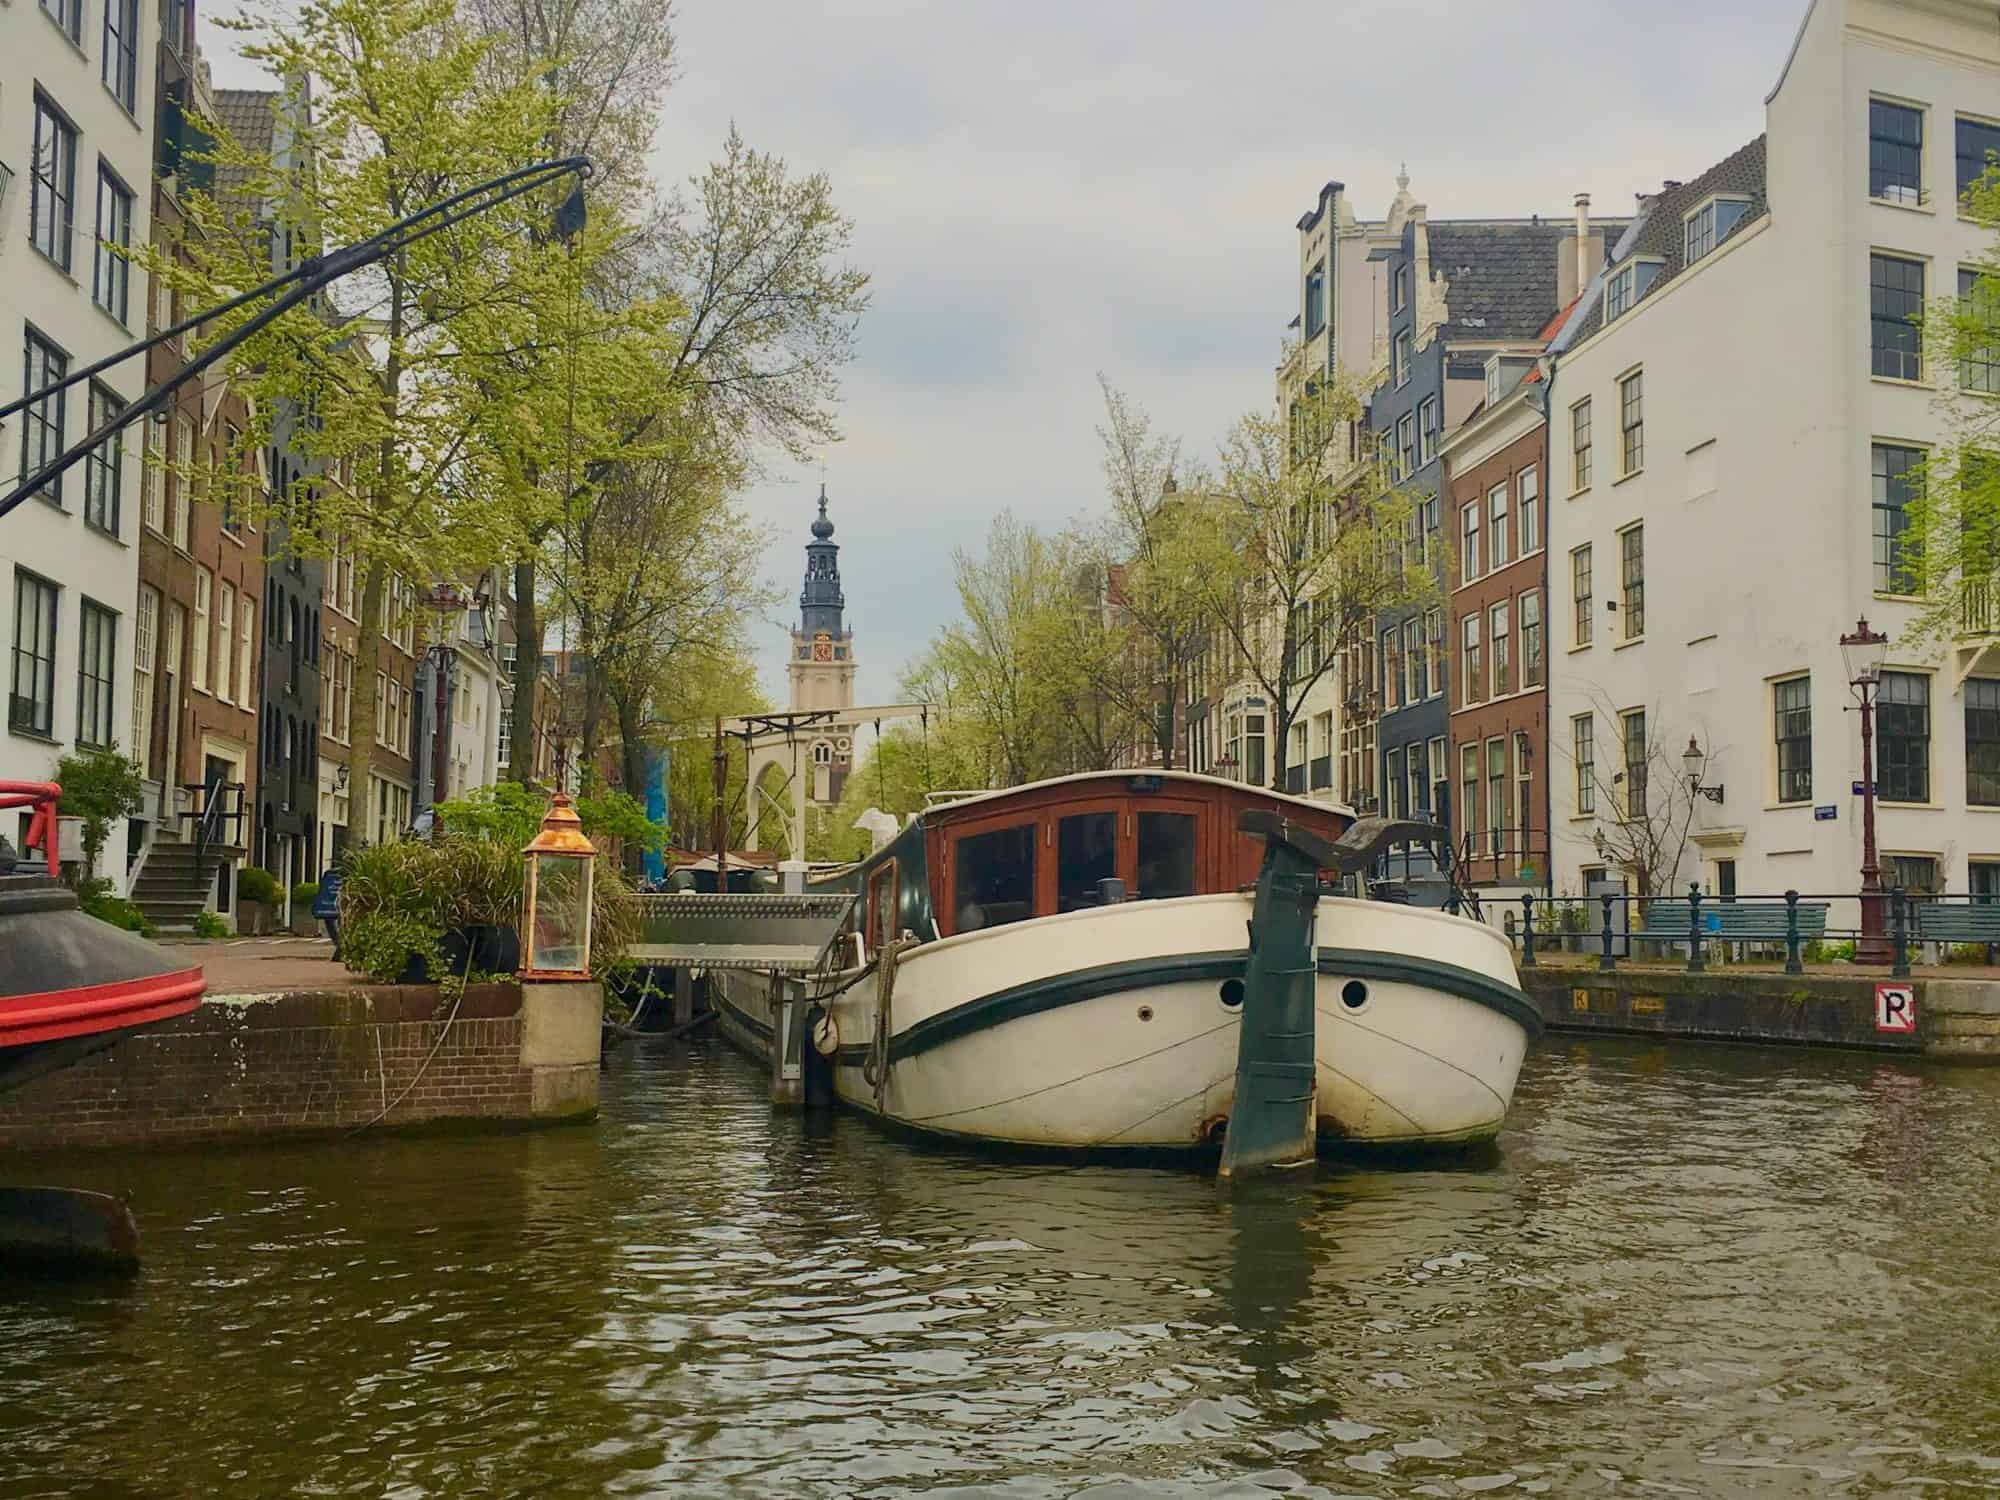 24 Hours in Amsterdam- What to See, Do, and Eat